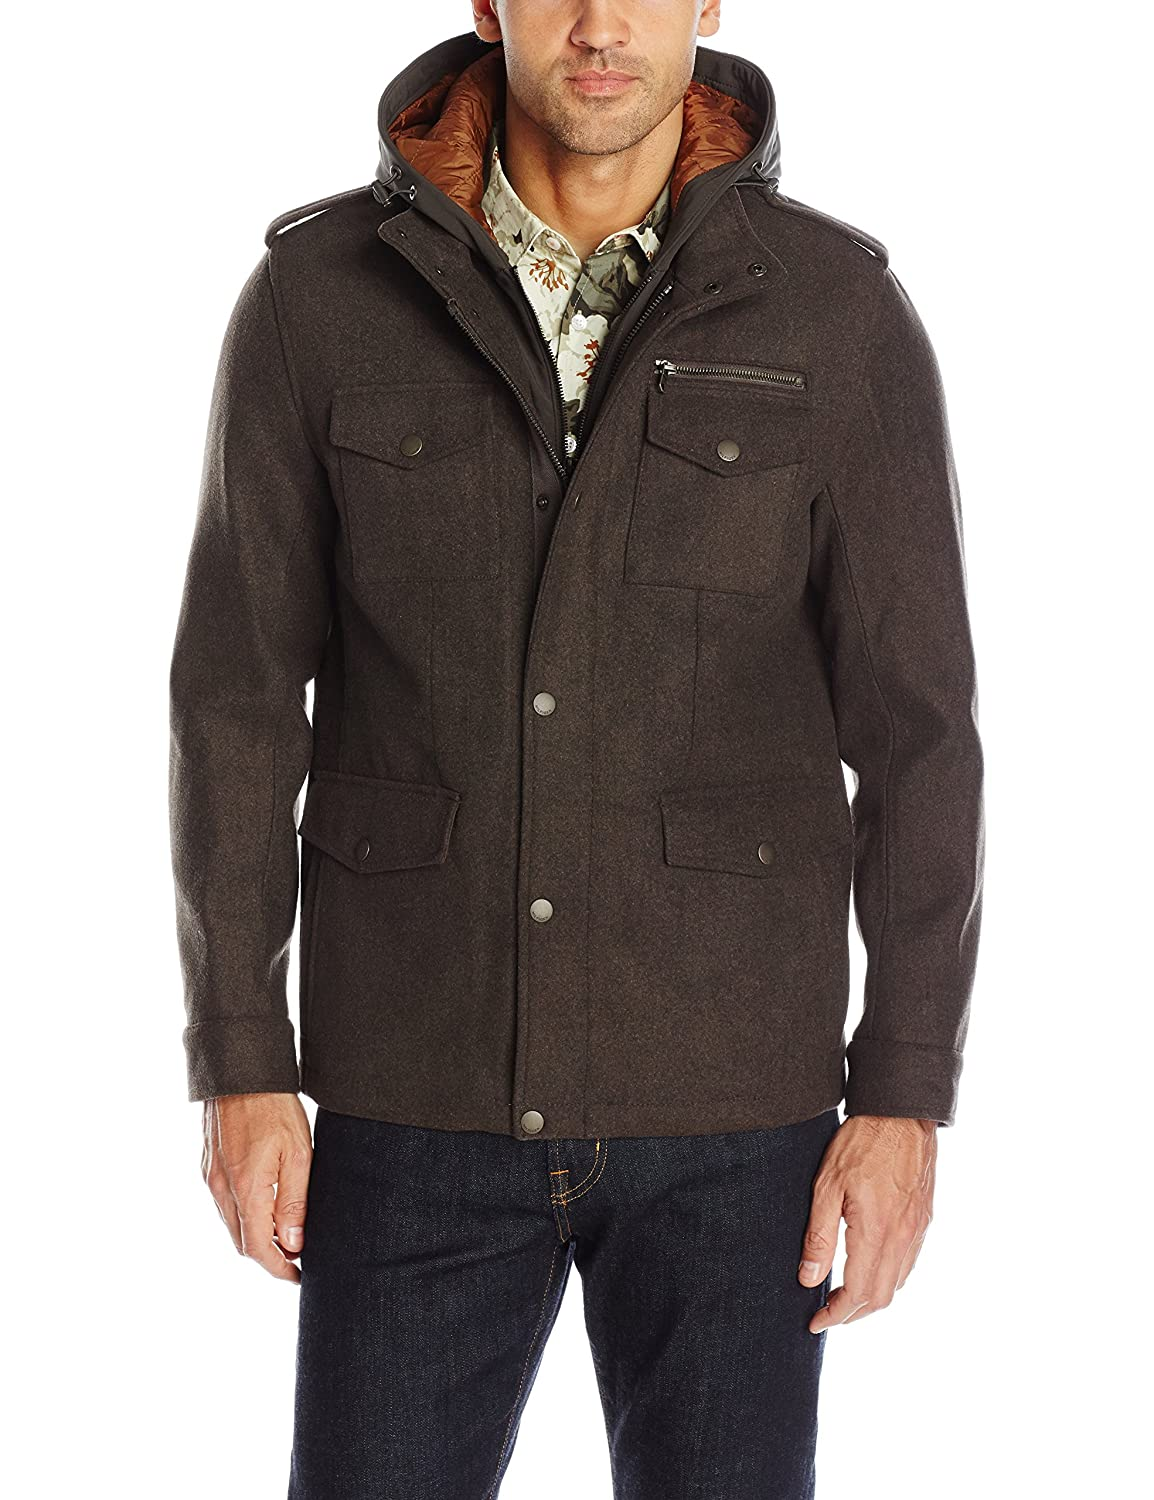 Tommy Hilfiger Men's Wool Blend Four Pocket Military Jacket with Soft Shell Hood 156AP146